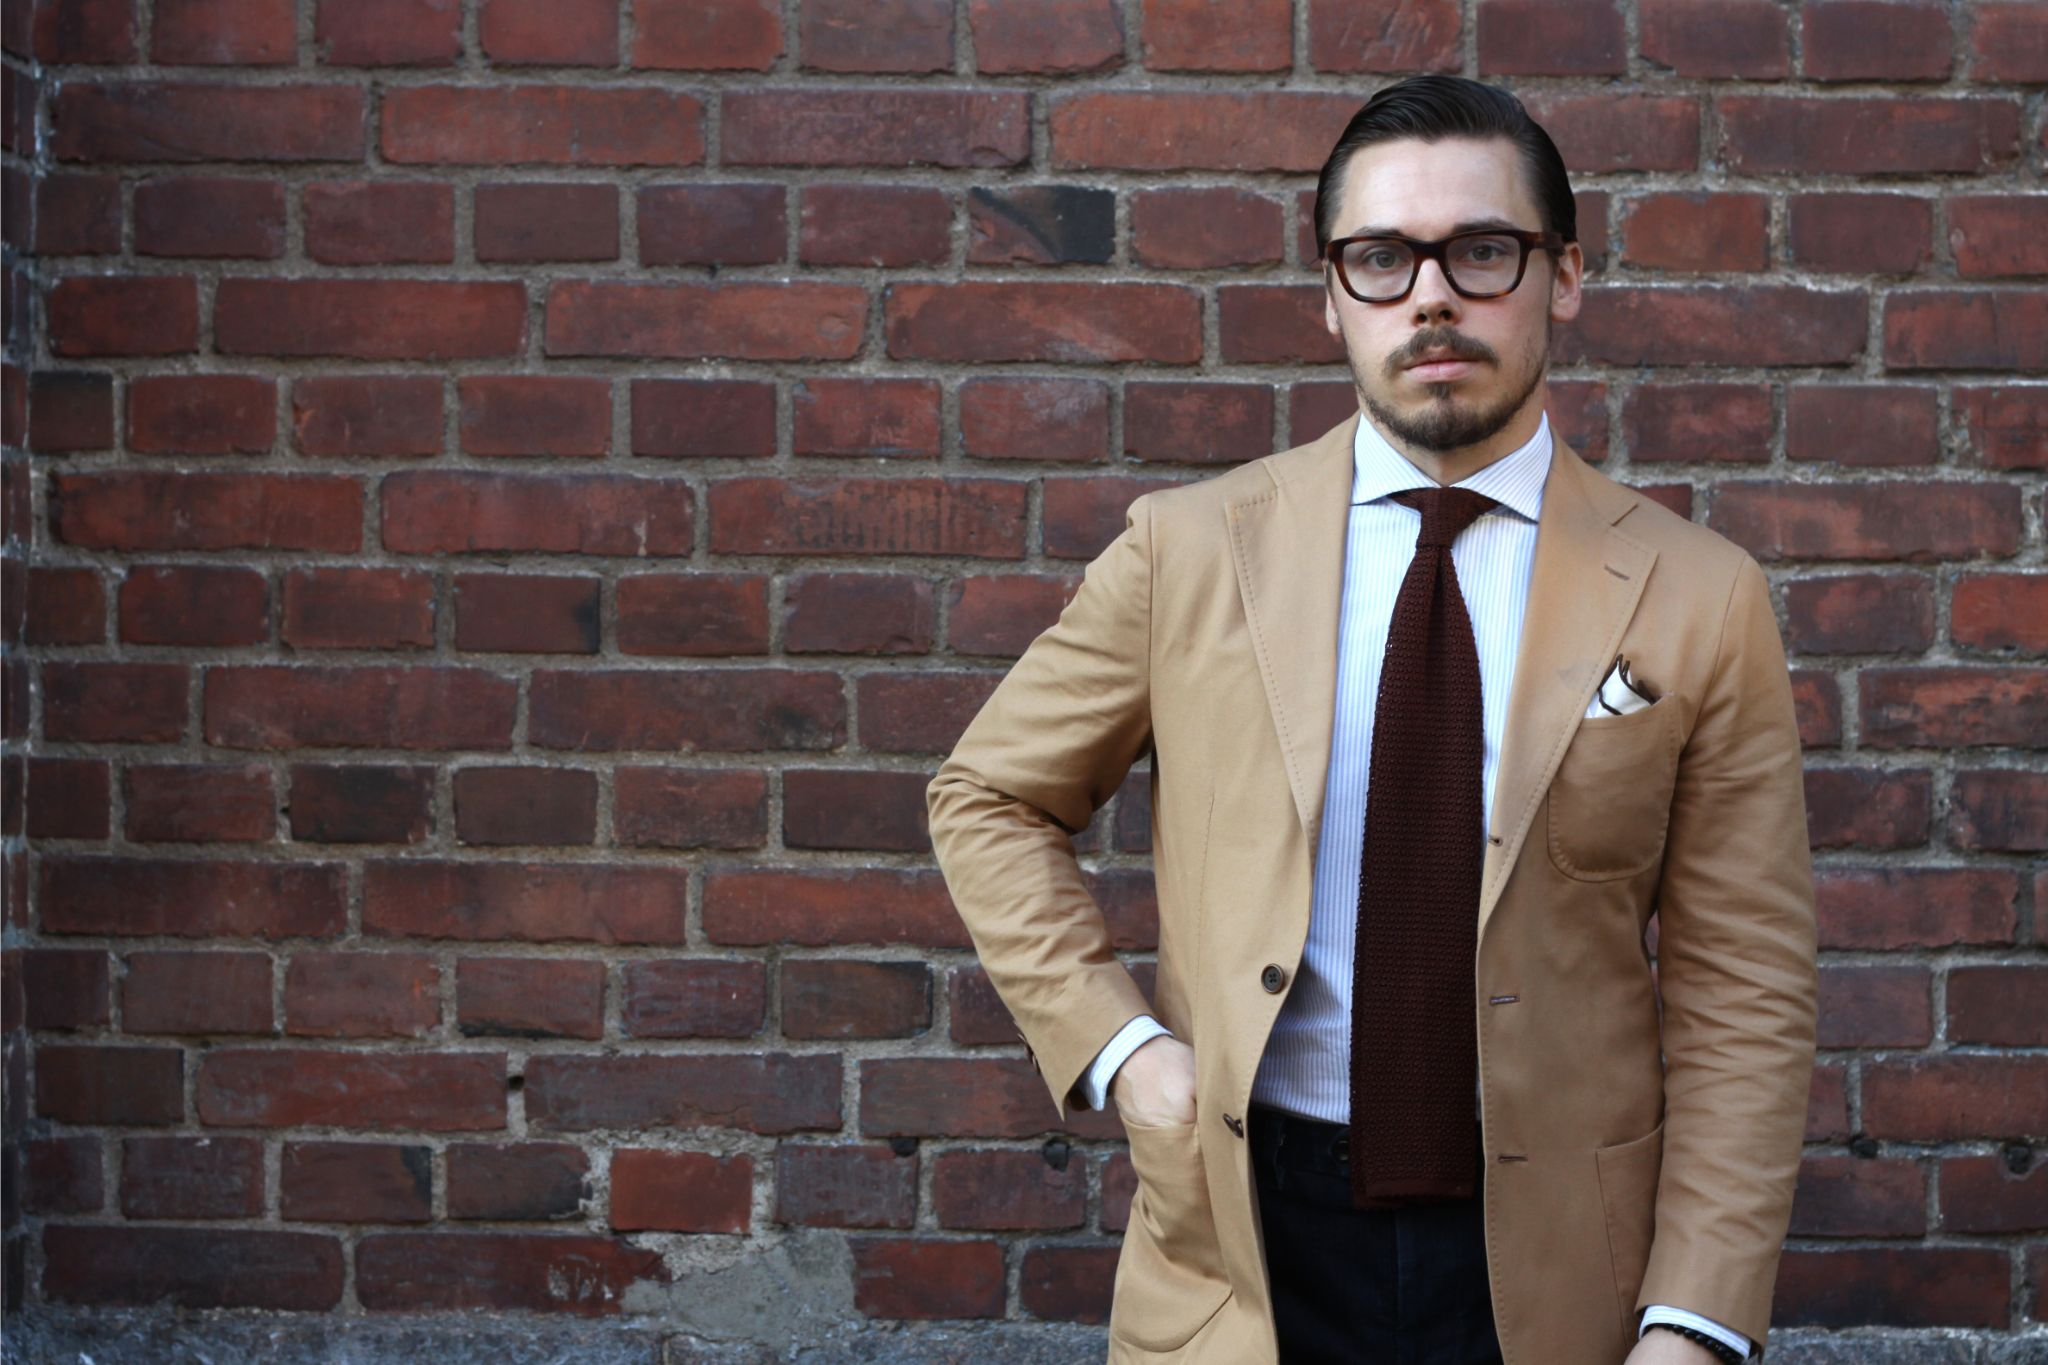 How to dress down a suit - camel colored cotton suit jacket with denim slacks